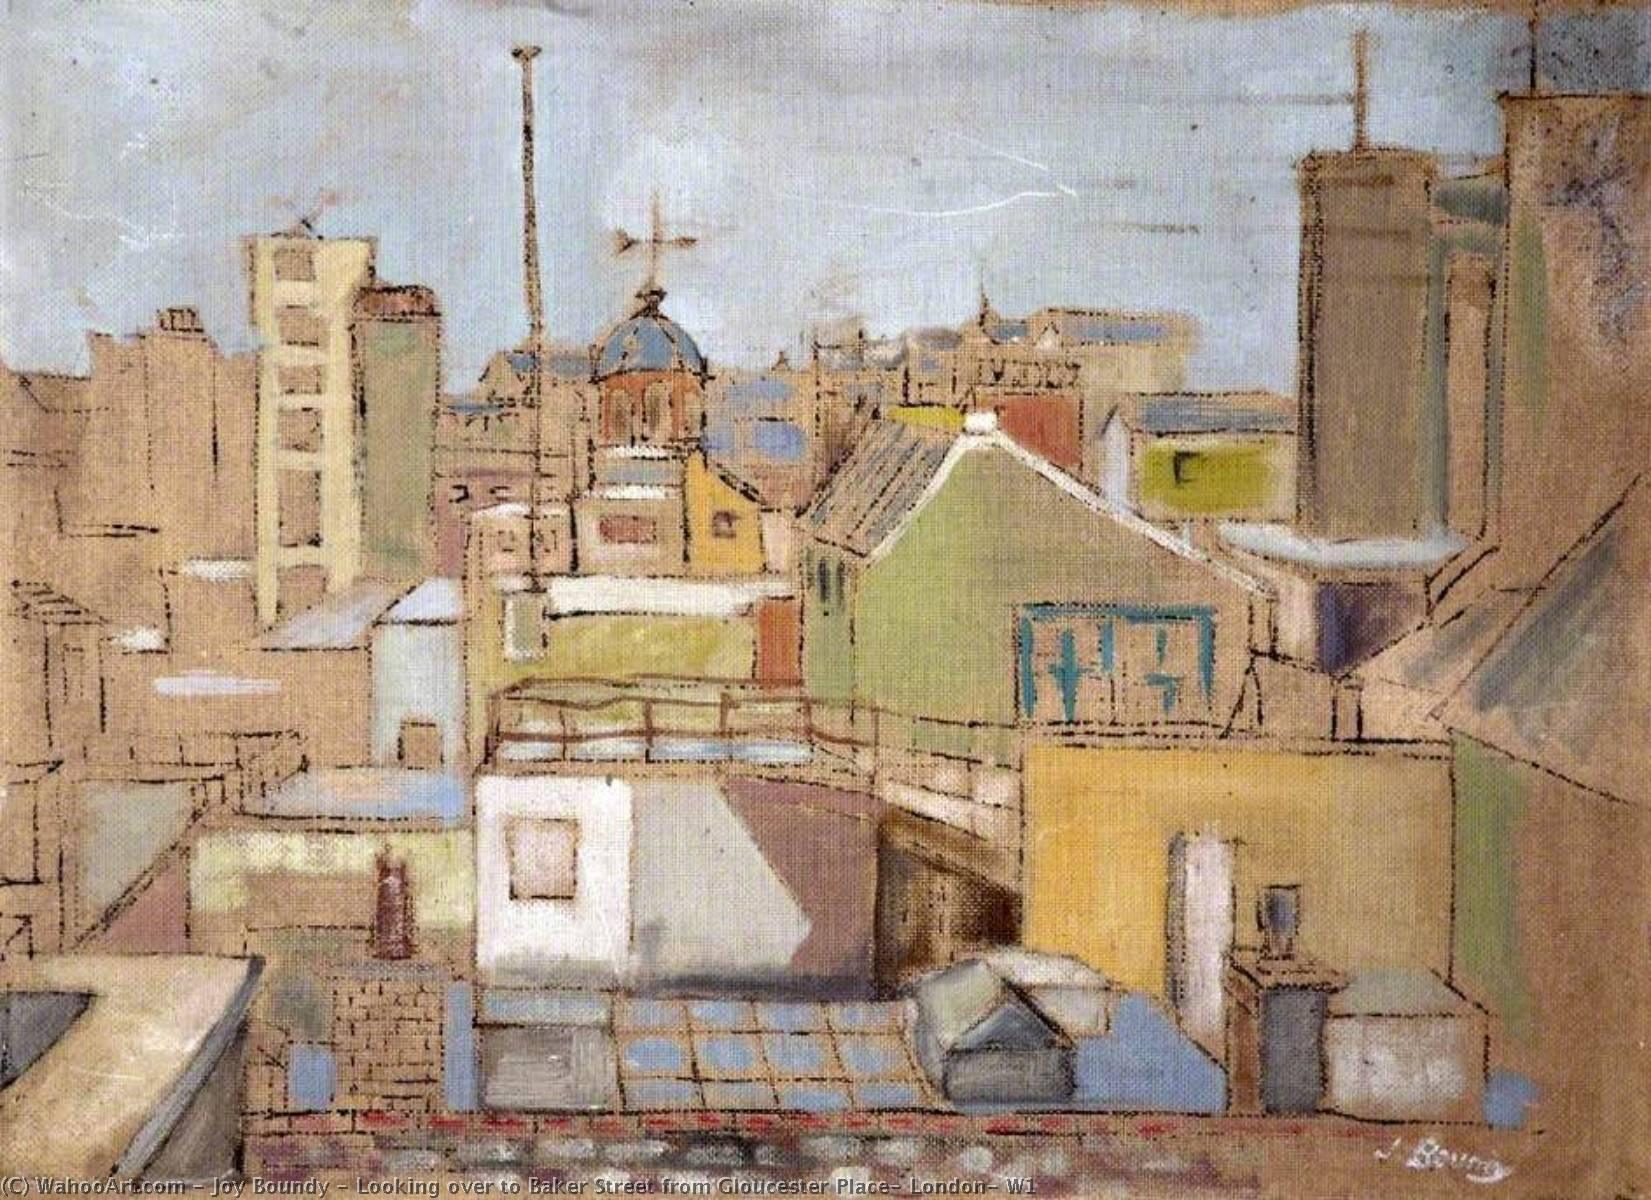 Looking over to Baker Street from Gloucester Place, London, W1, Oil On Canvas by Joy Boundy